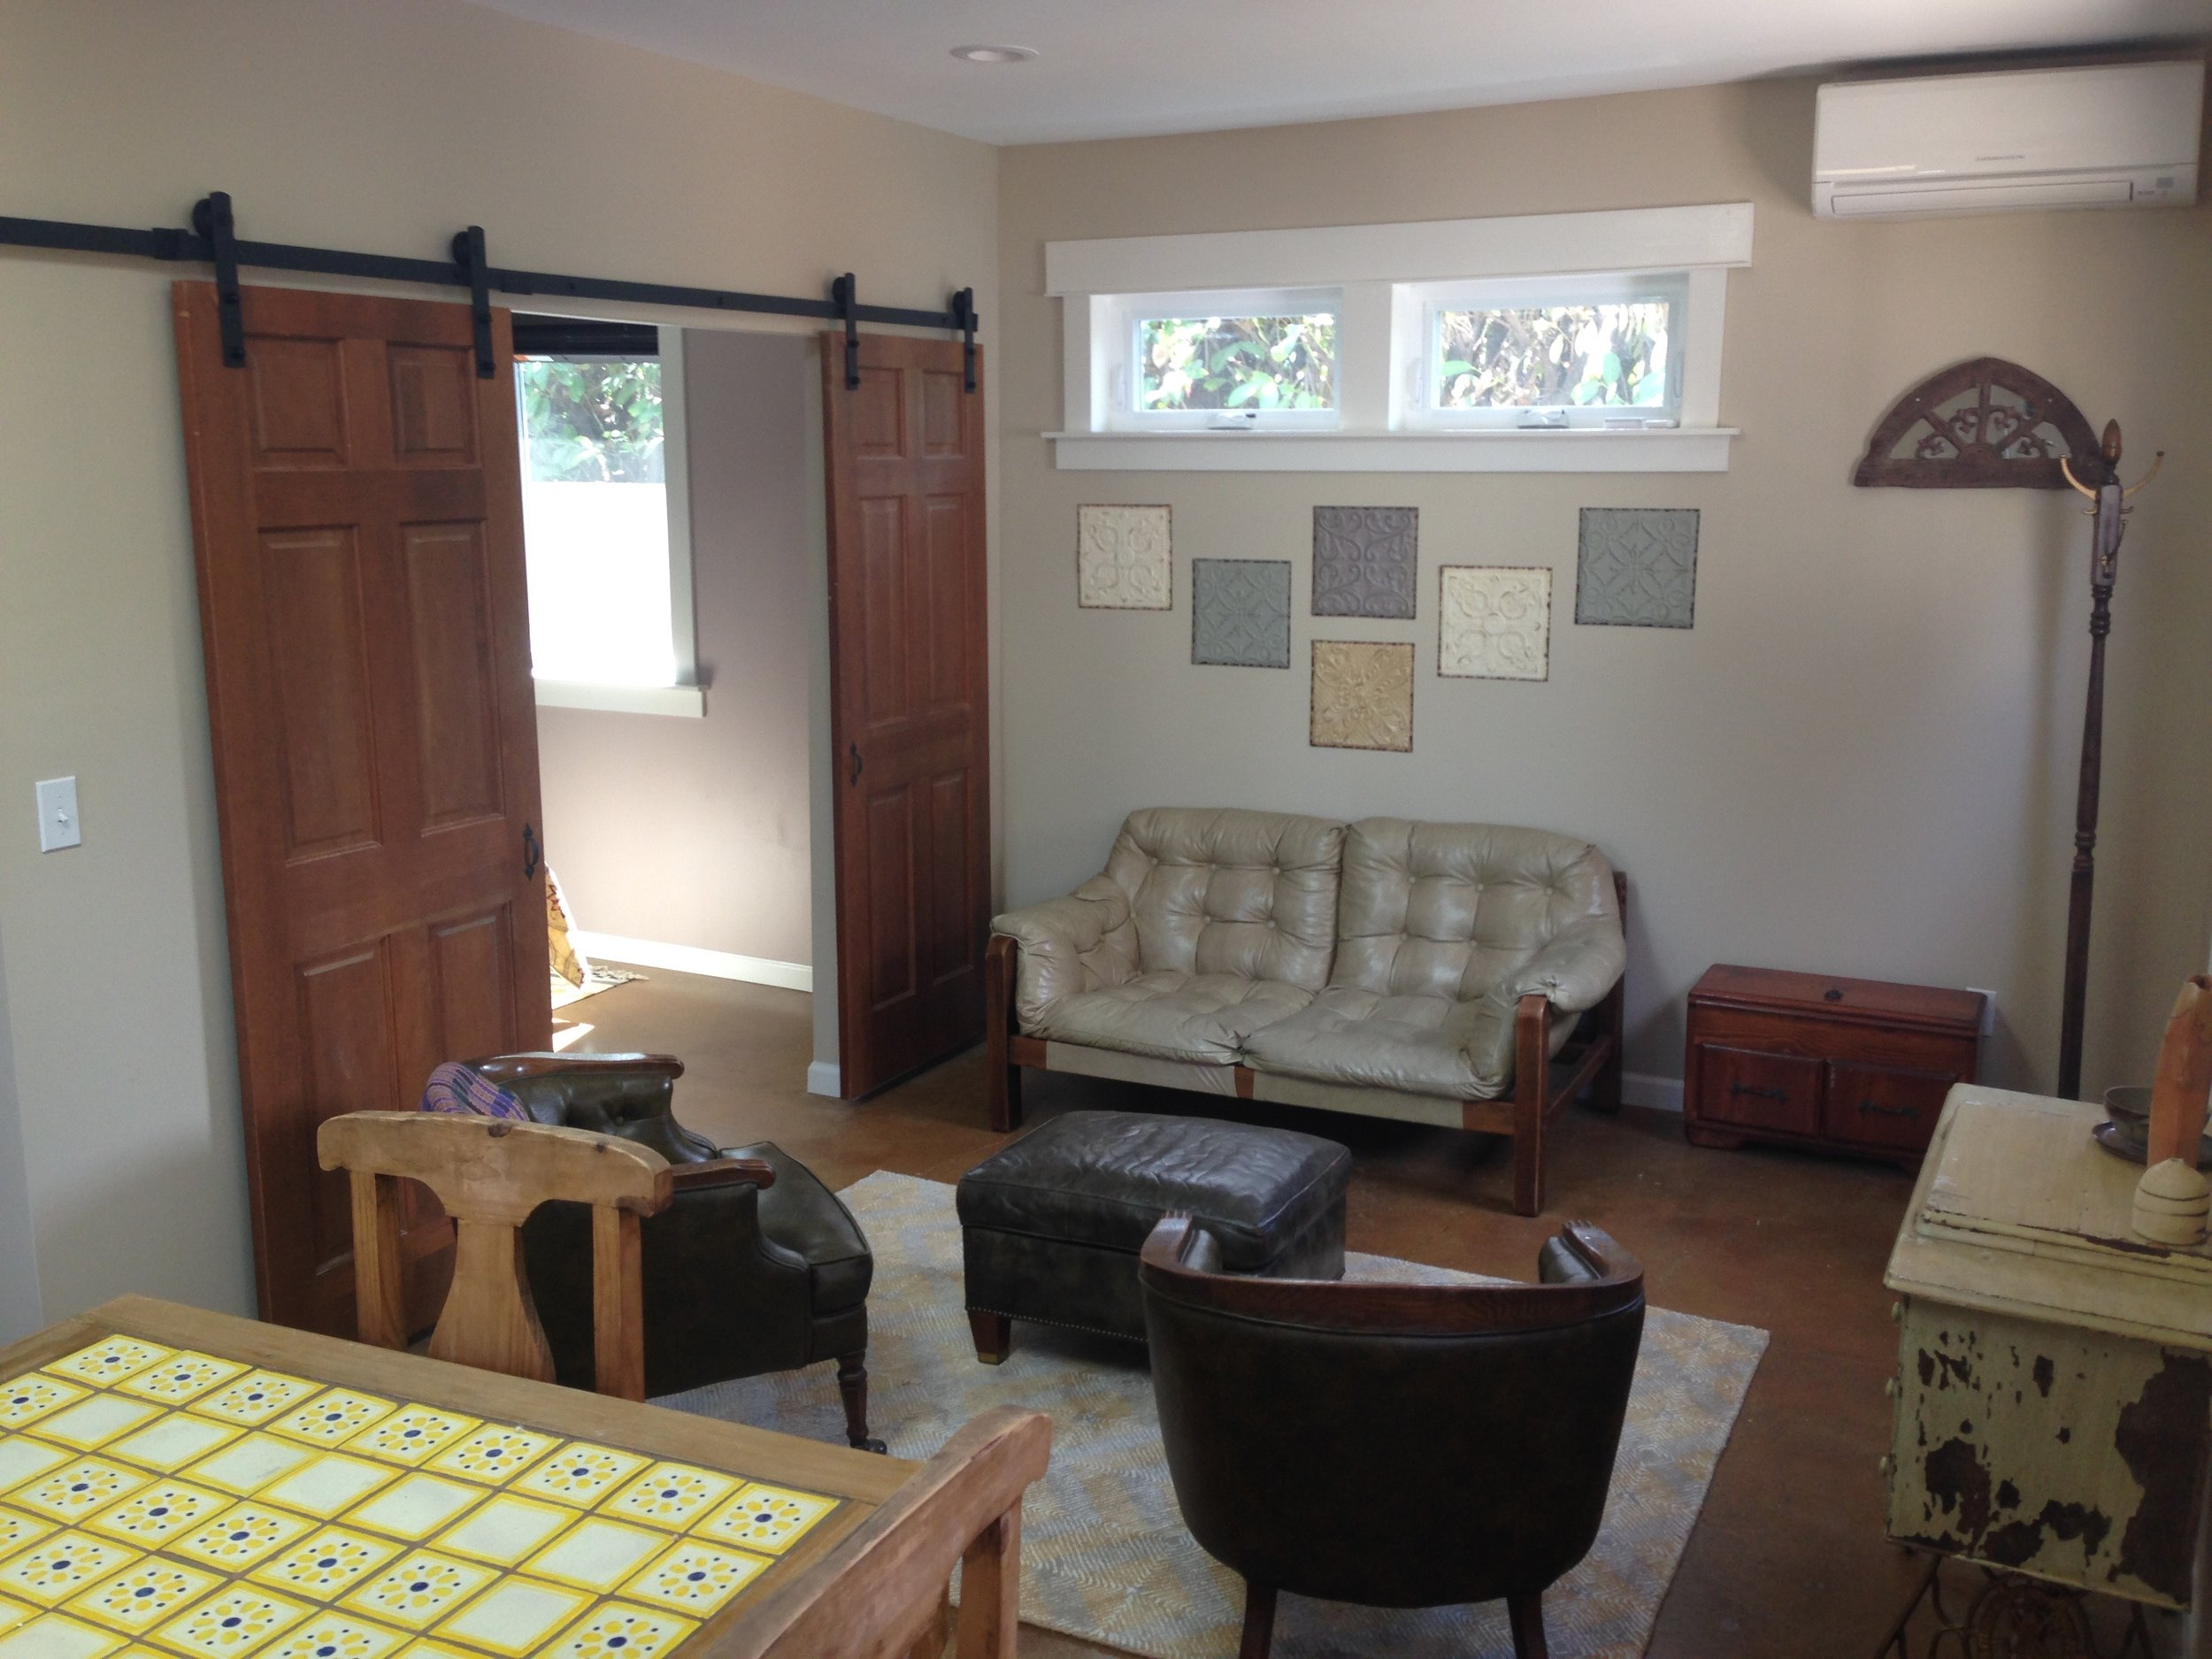 How To Save Money With A Garage Conversion ADU